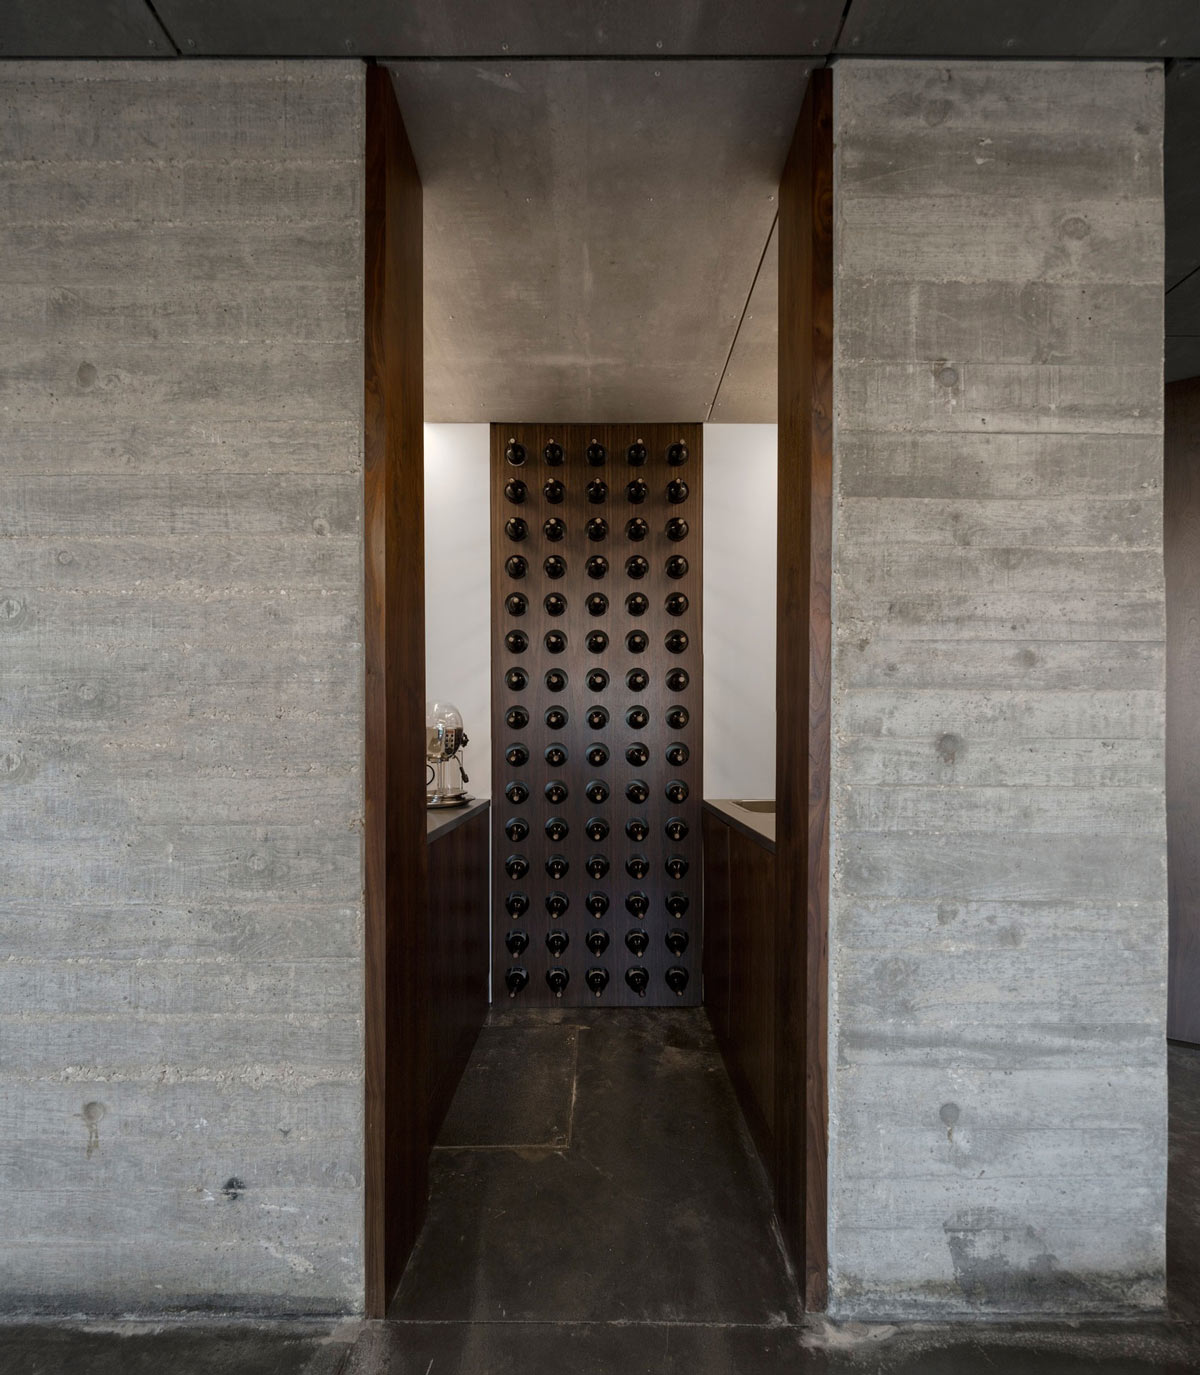 Wine Room, Concrete Floors, C+P House in Lisbon, Portugal by Gonçalo das Neves Nunes